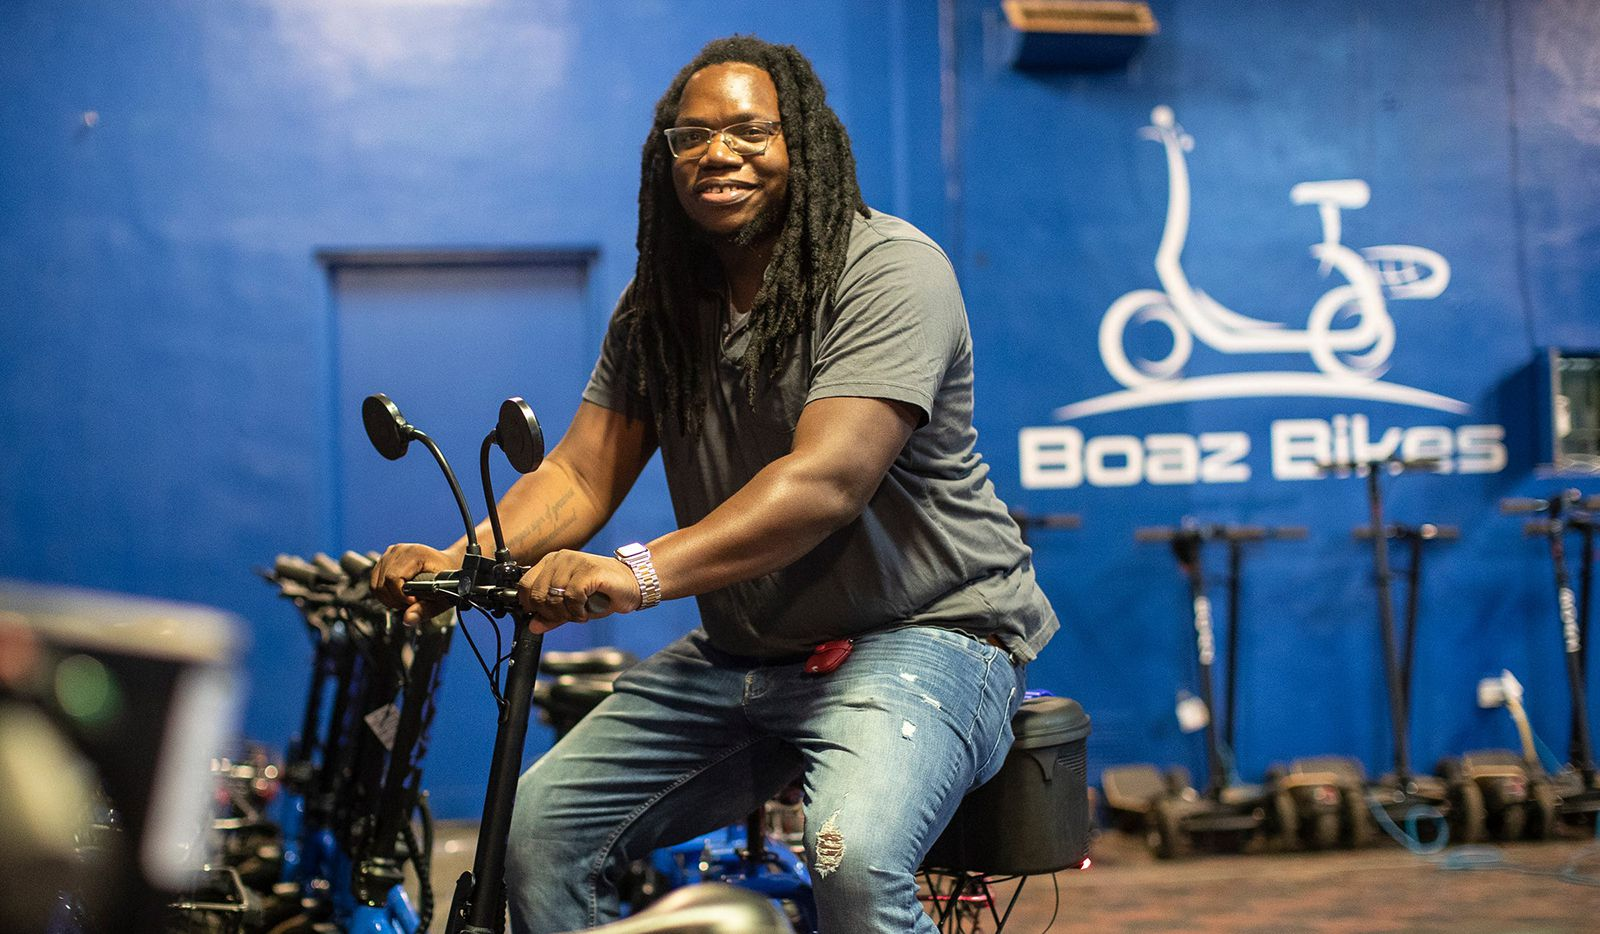 Boaz Bikes is one of the few Black-owned e-scooter companies in the country, and one of only two that are headquartered in Detroit and not the West or East Coast. Boaz founder and CEO Emil Nnani, 32, who grew up in Raleigh, N.C., has had a unique journey to becoming an e-scooter company founder. He is a former Bloods gang member who, after serving stints in juvenile jail for robbery, found Christ and became a Christian hip-hop artist known as E-Fetti. Prior to starting Boaz, Nnani had a Christian apparel business that he eventually sold and an errands-on-demand startup based in Dallas, where he resides with his wife and family when not in Detroit.